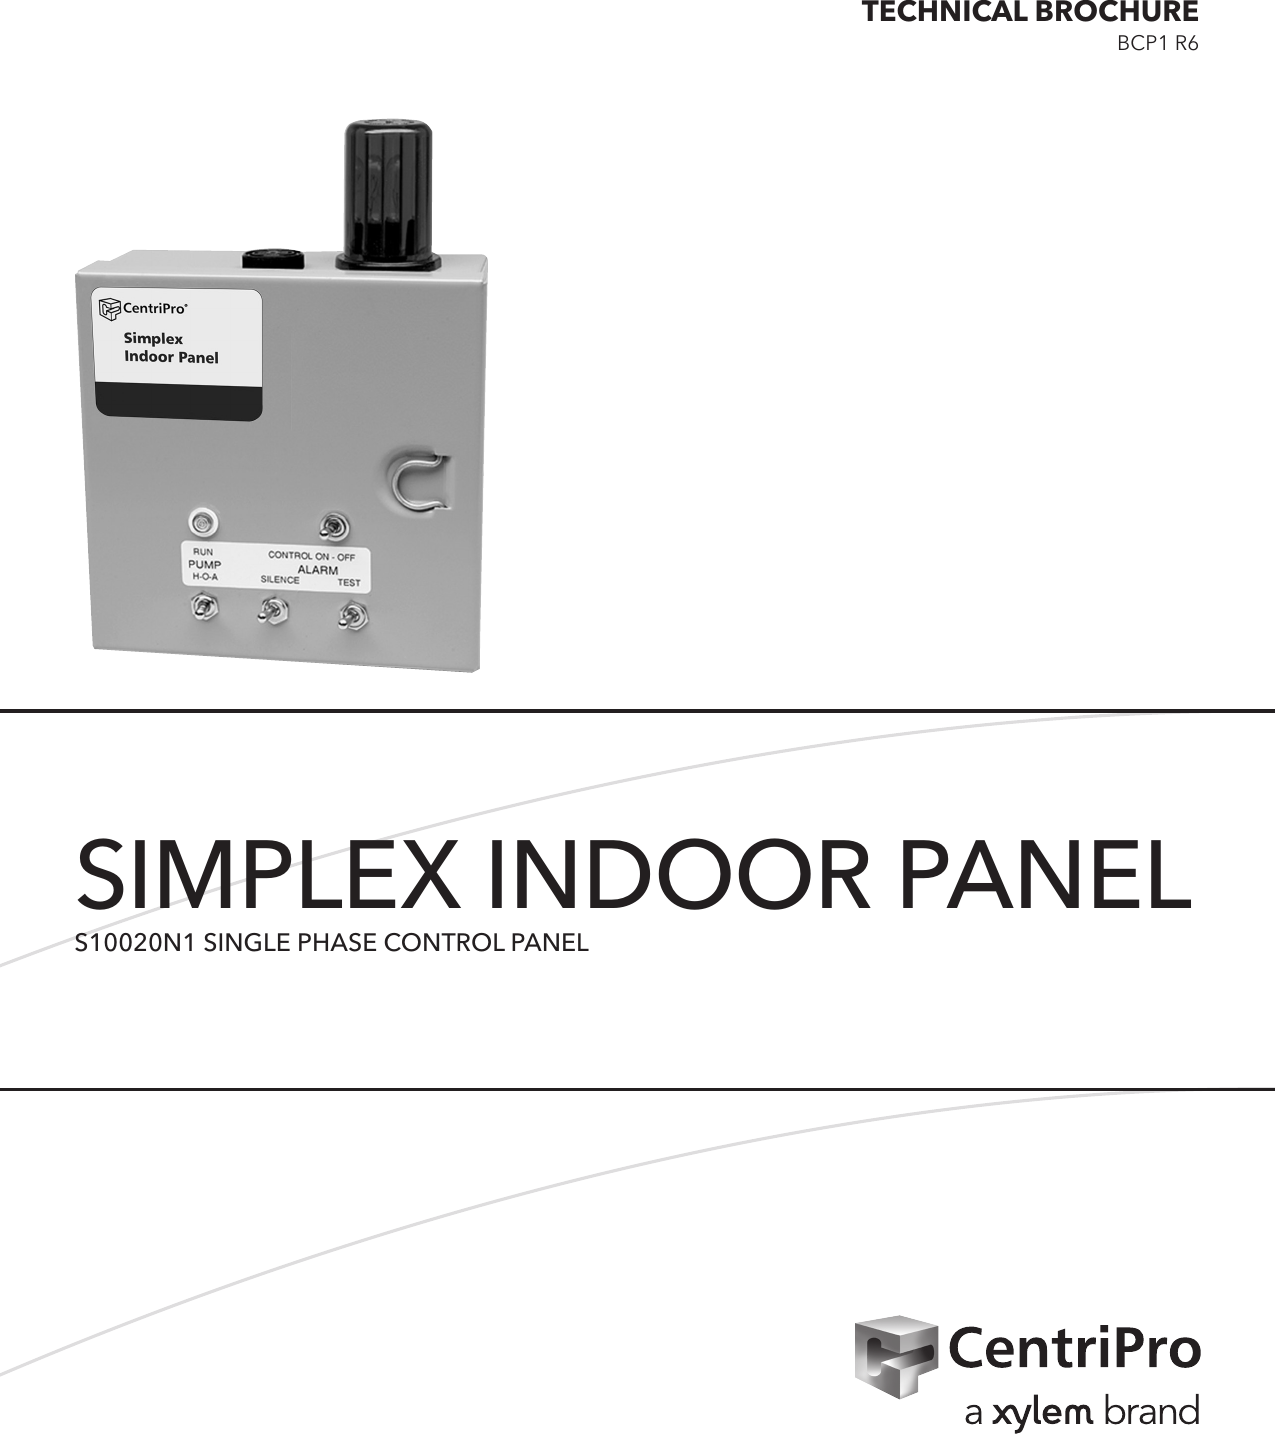 538638 3 Goulds A Series Simplex Indoor Panel Bcpa3 Bcp1 S10020n1 Iid Wiring Diagram Single Phase Control Technical Brochure